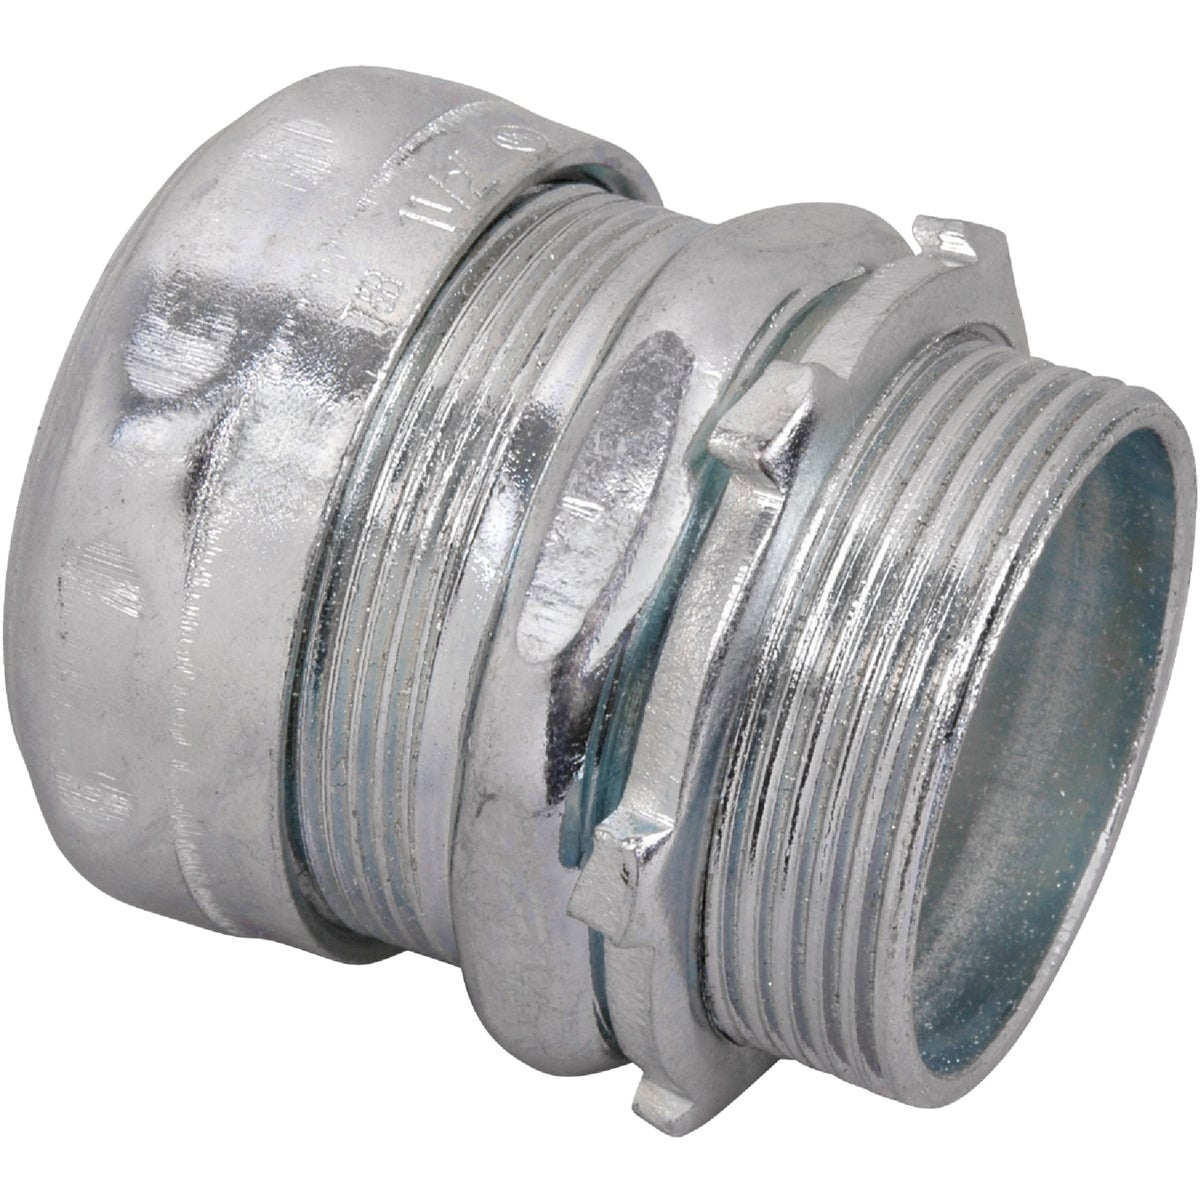 "2"" EMT CONNECTOR - TC116-SC-1 by Thomas & Betts"